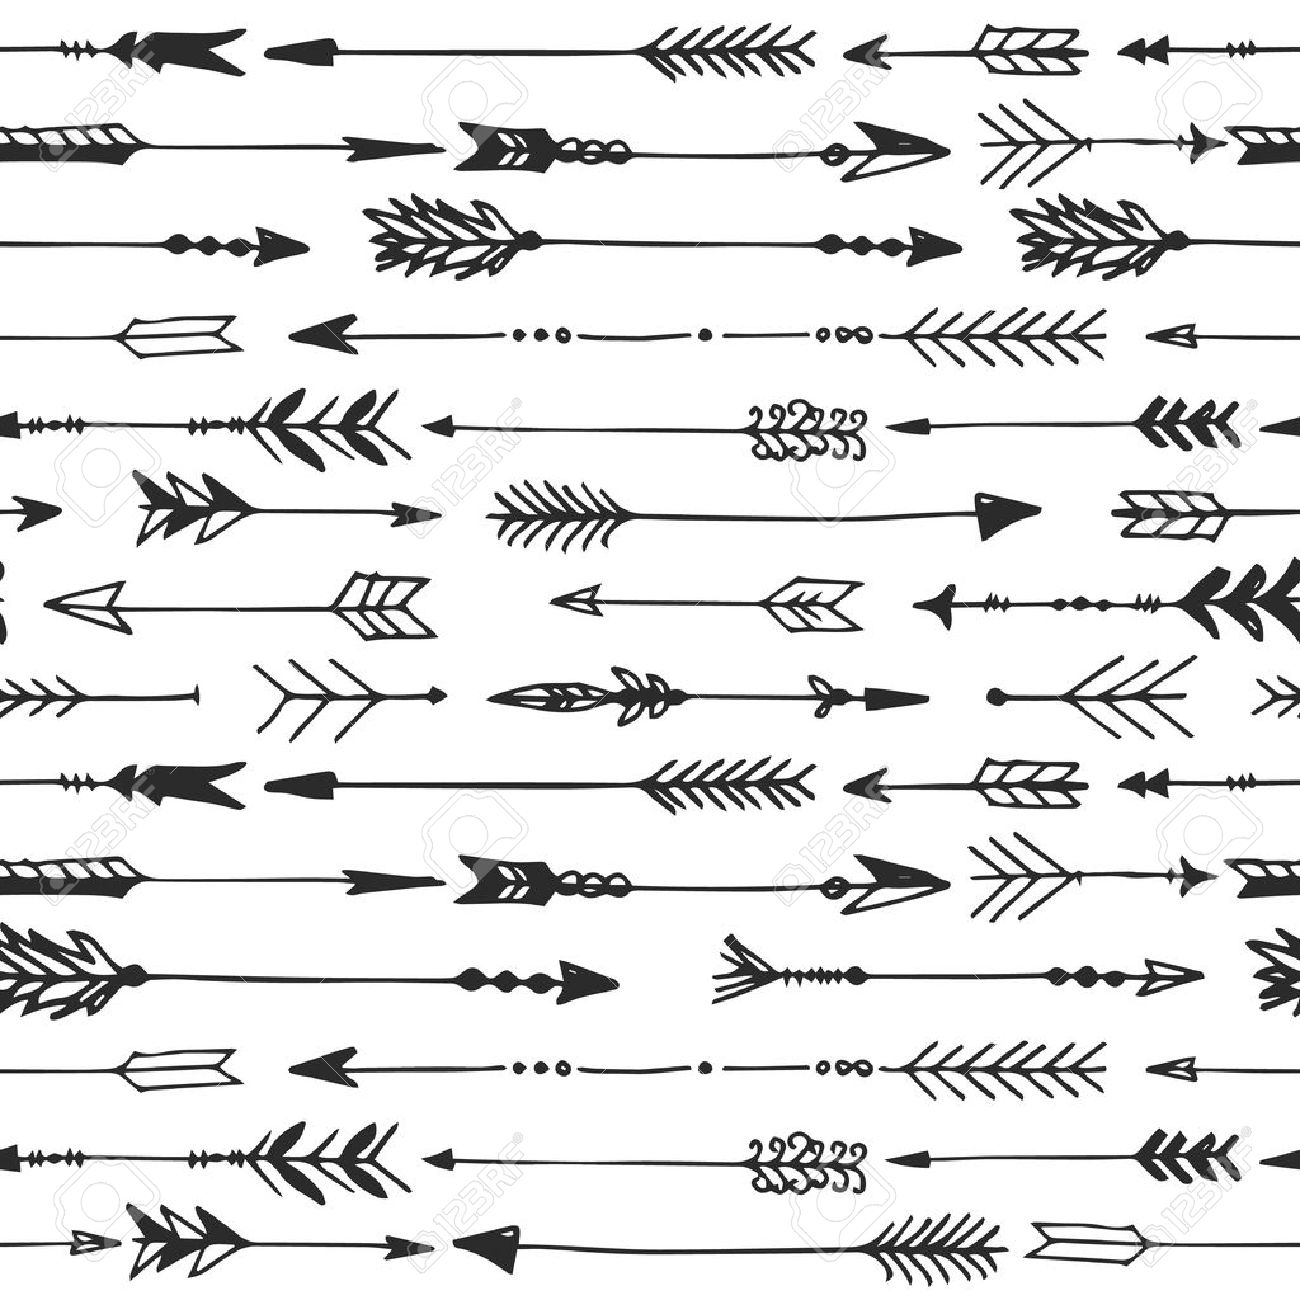 Arrow Rustic Seamless Pattern Hand Drawn Vintage Vector Background Decorative Design Illustration Stock